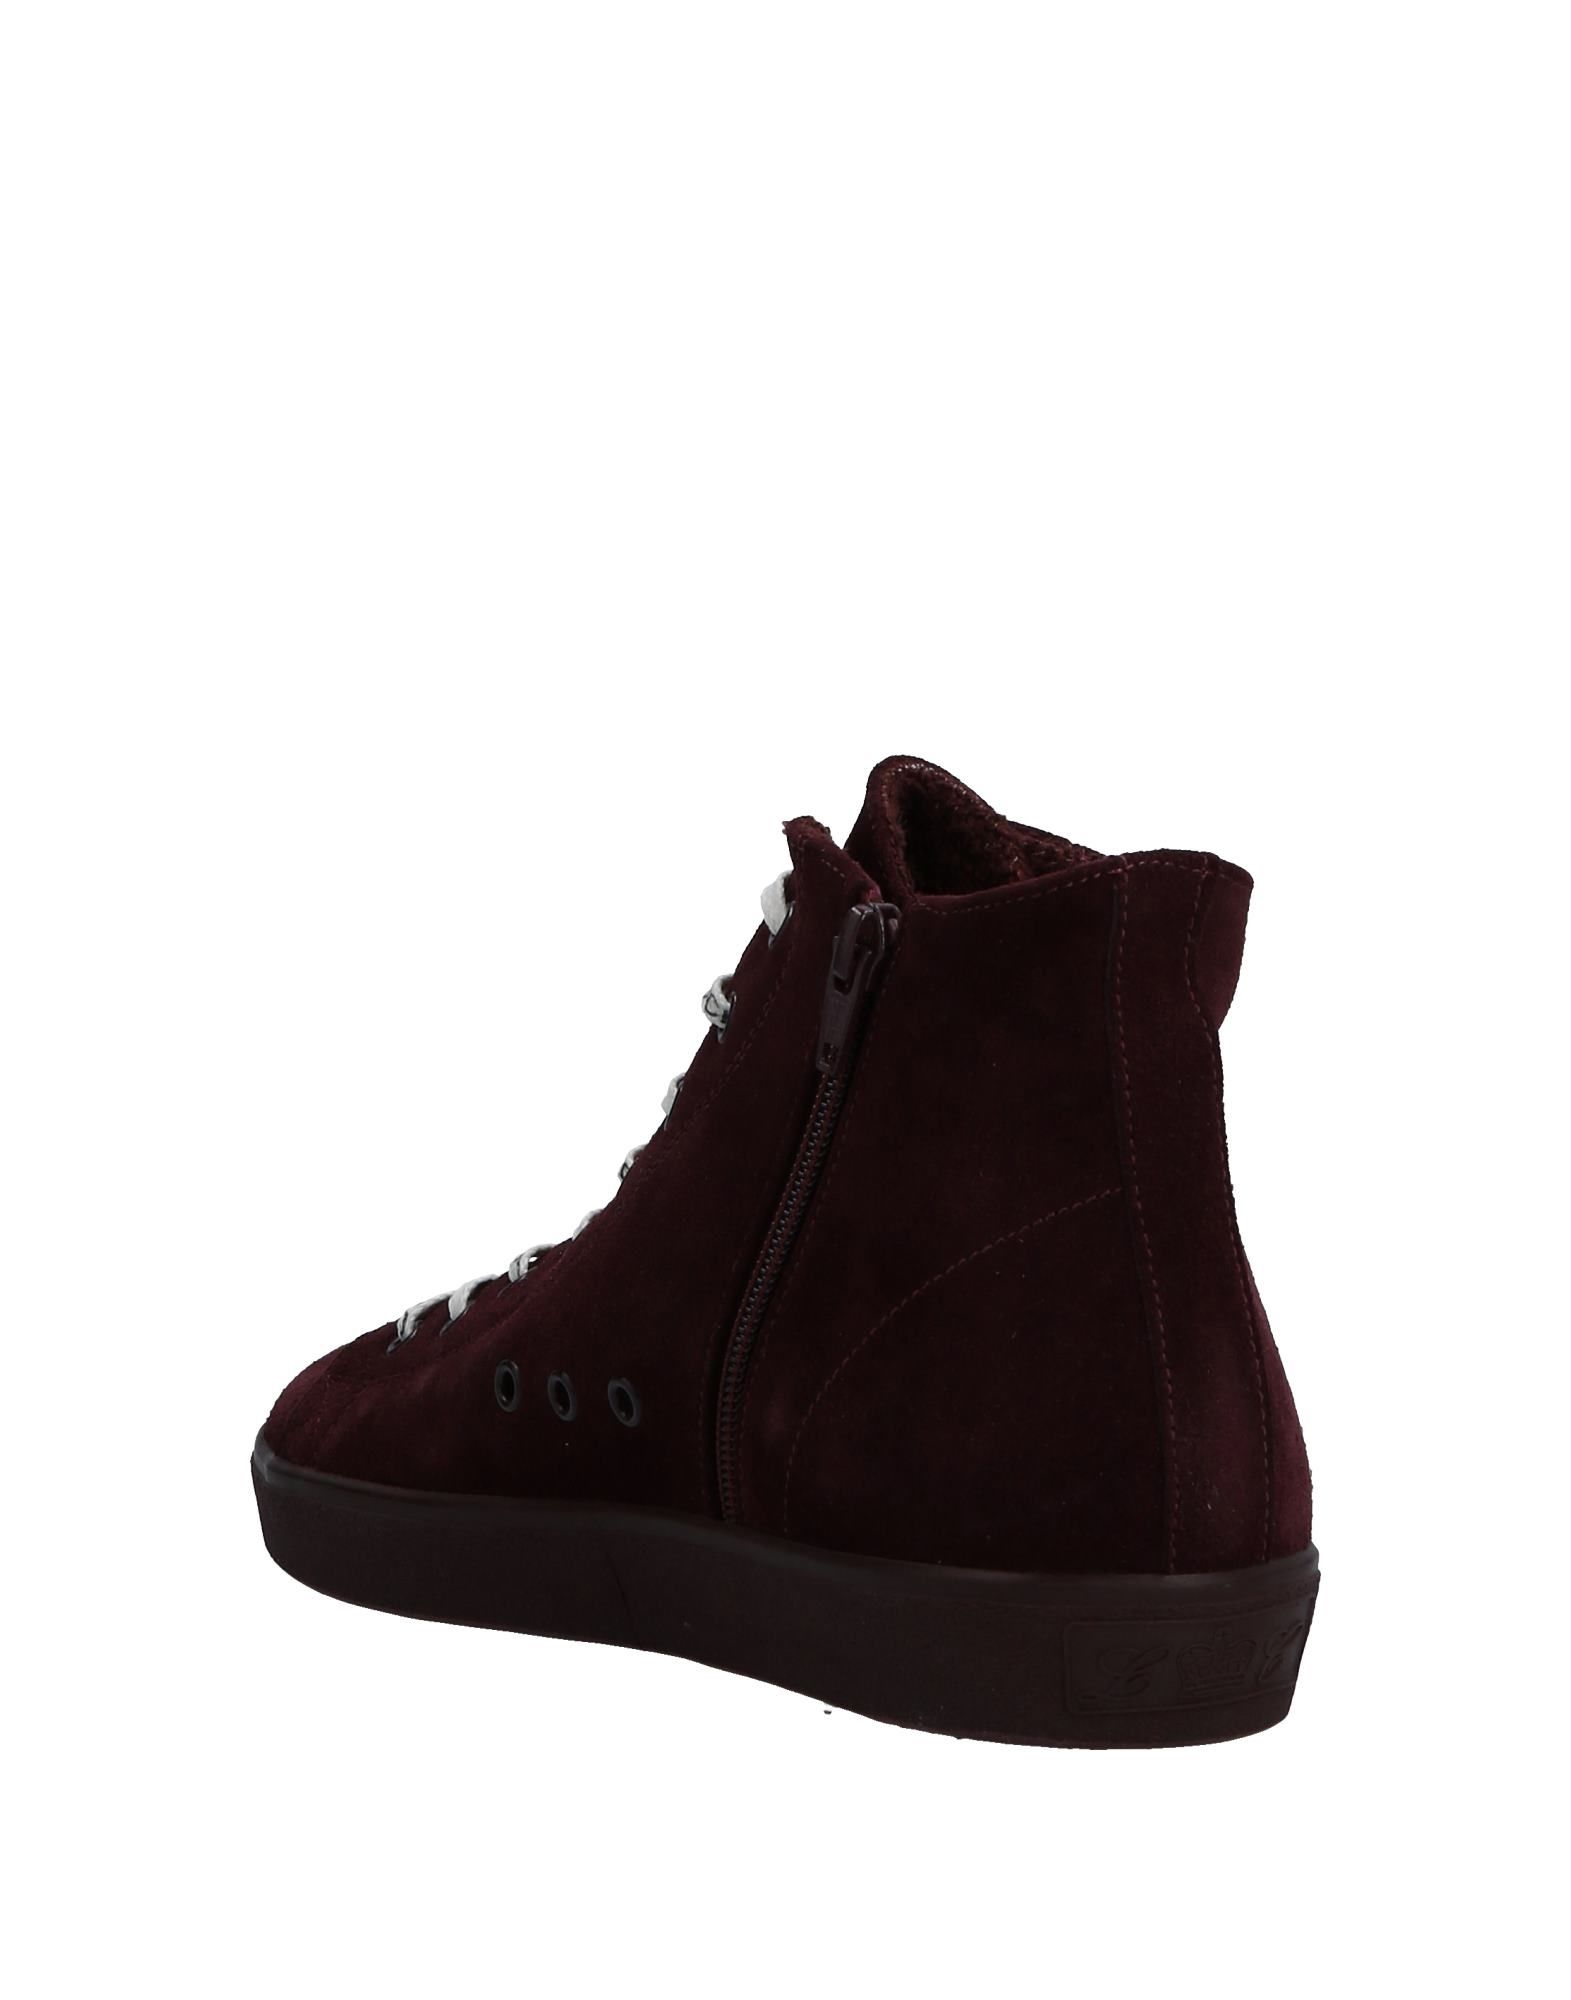 Sneakers Leather - Crown Uomo - Leather 11434335OC 5a12e1